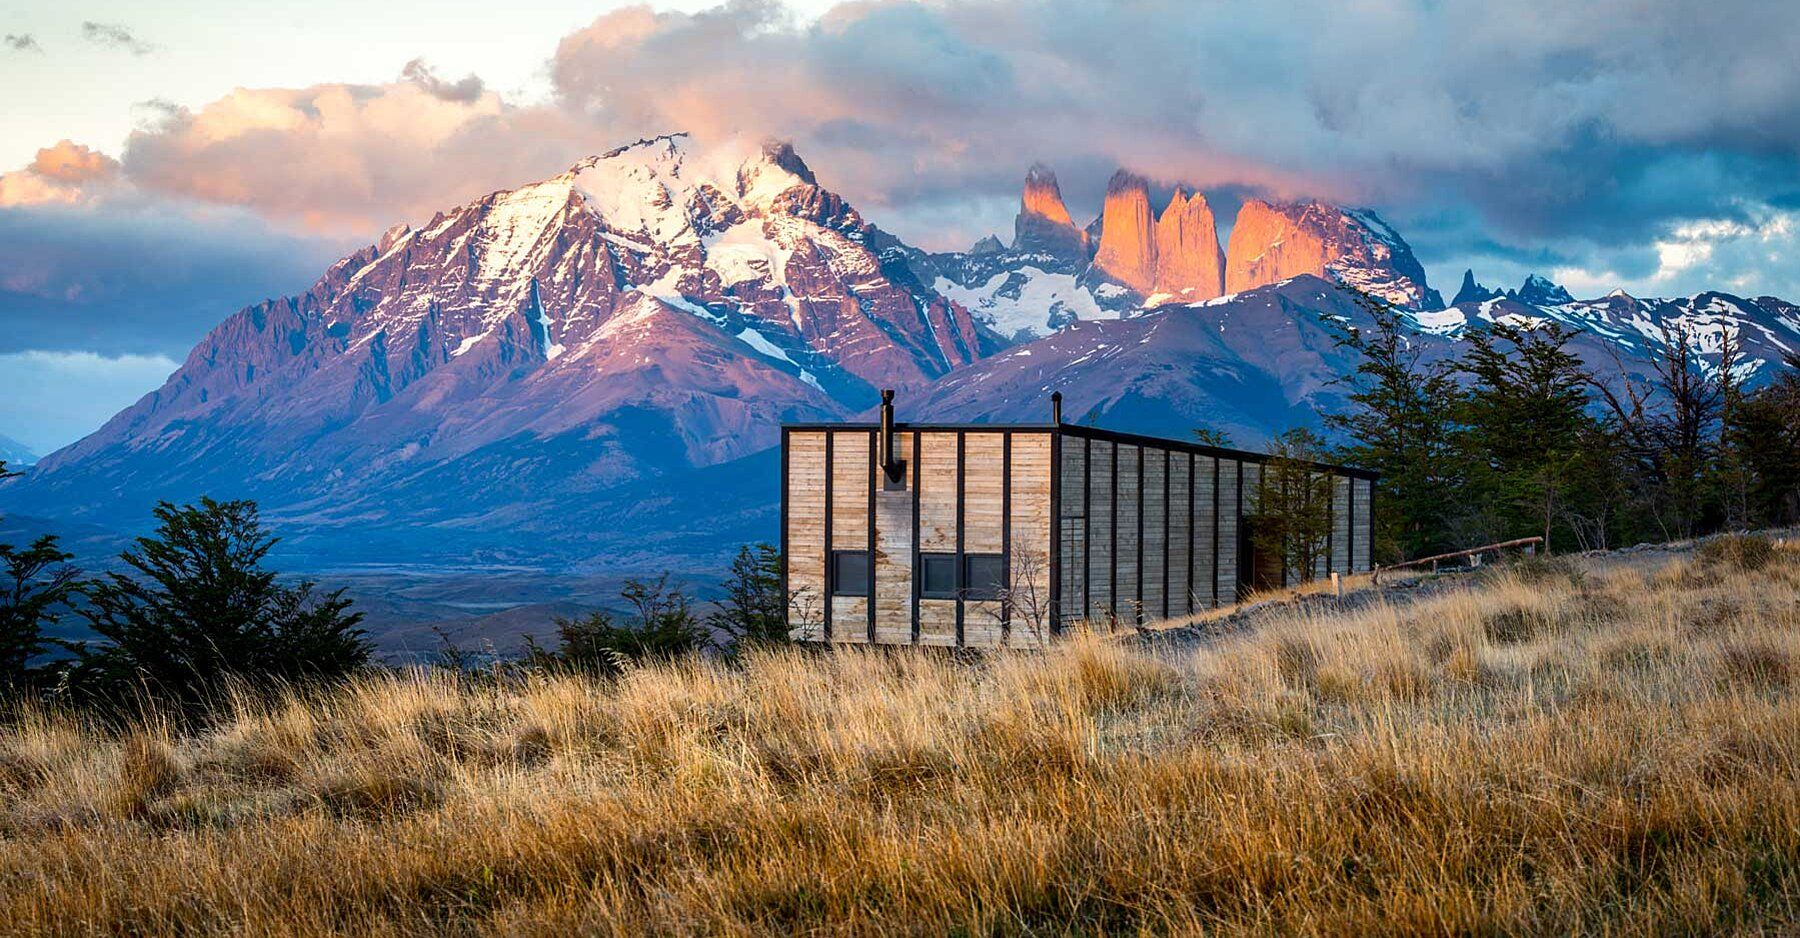 Top 10 Resort Hotels in South America   Travel and leisure, Hotels ...